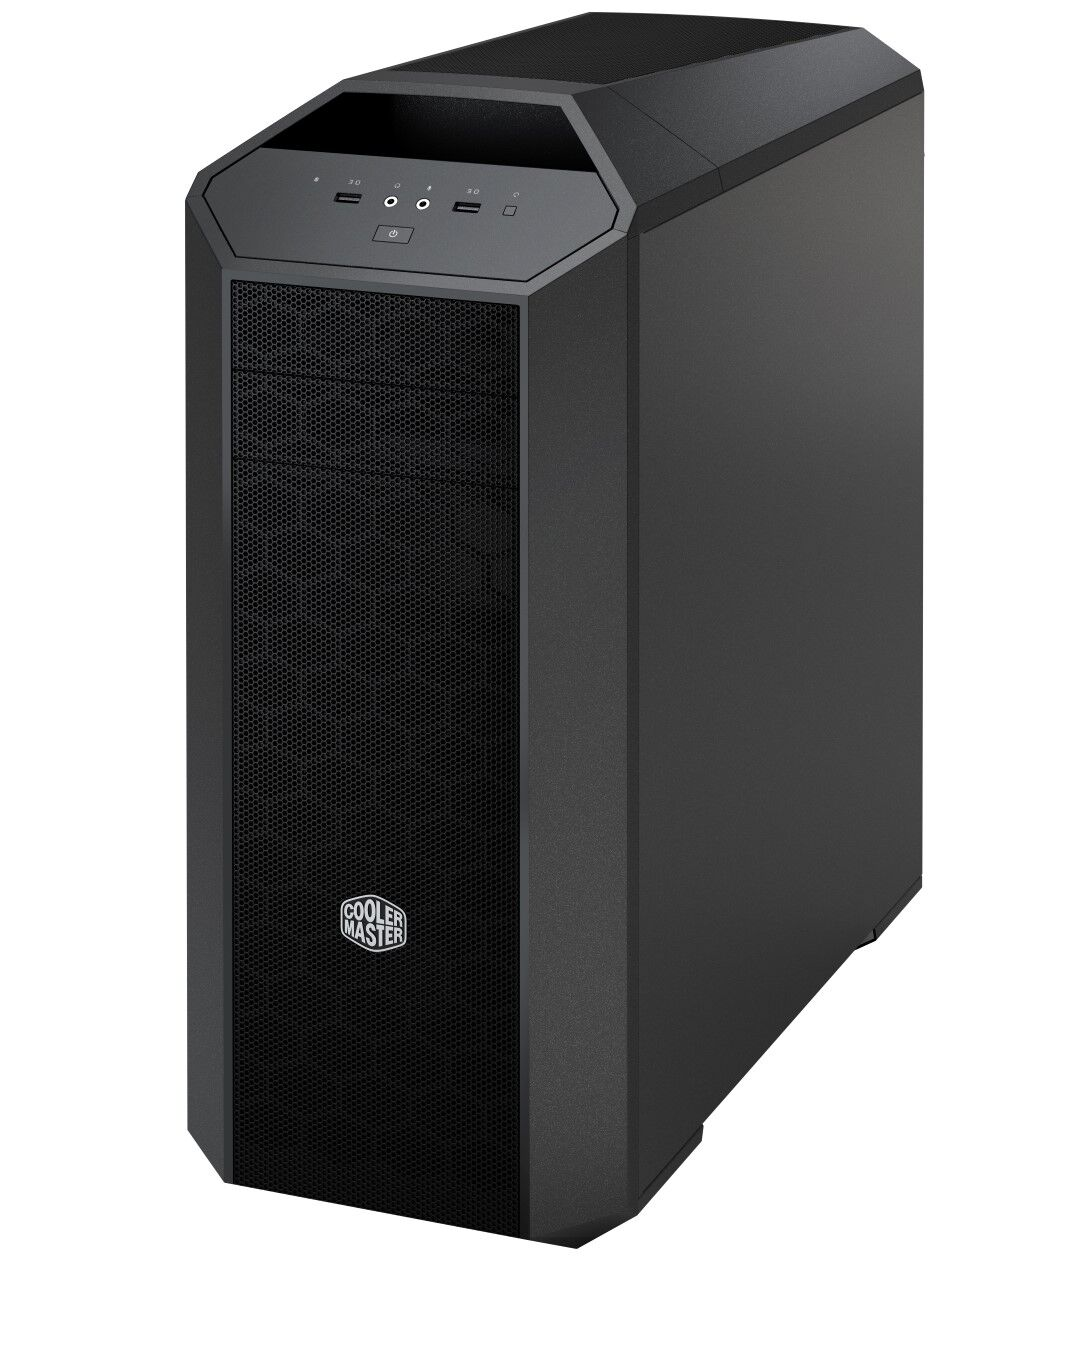 Cooler Master MasterCase 5 available on this 20th August 21